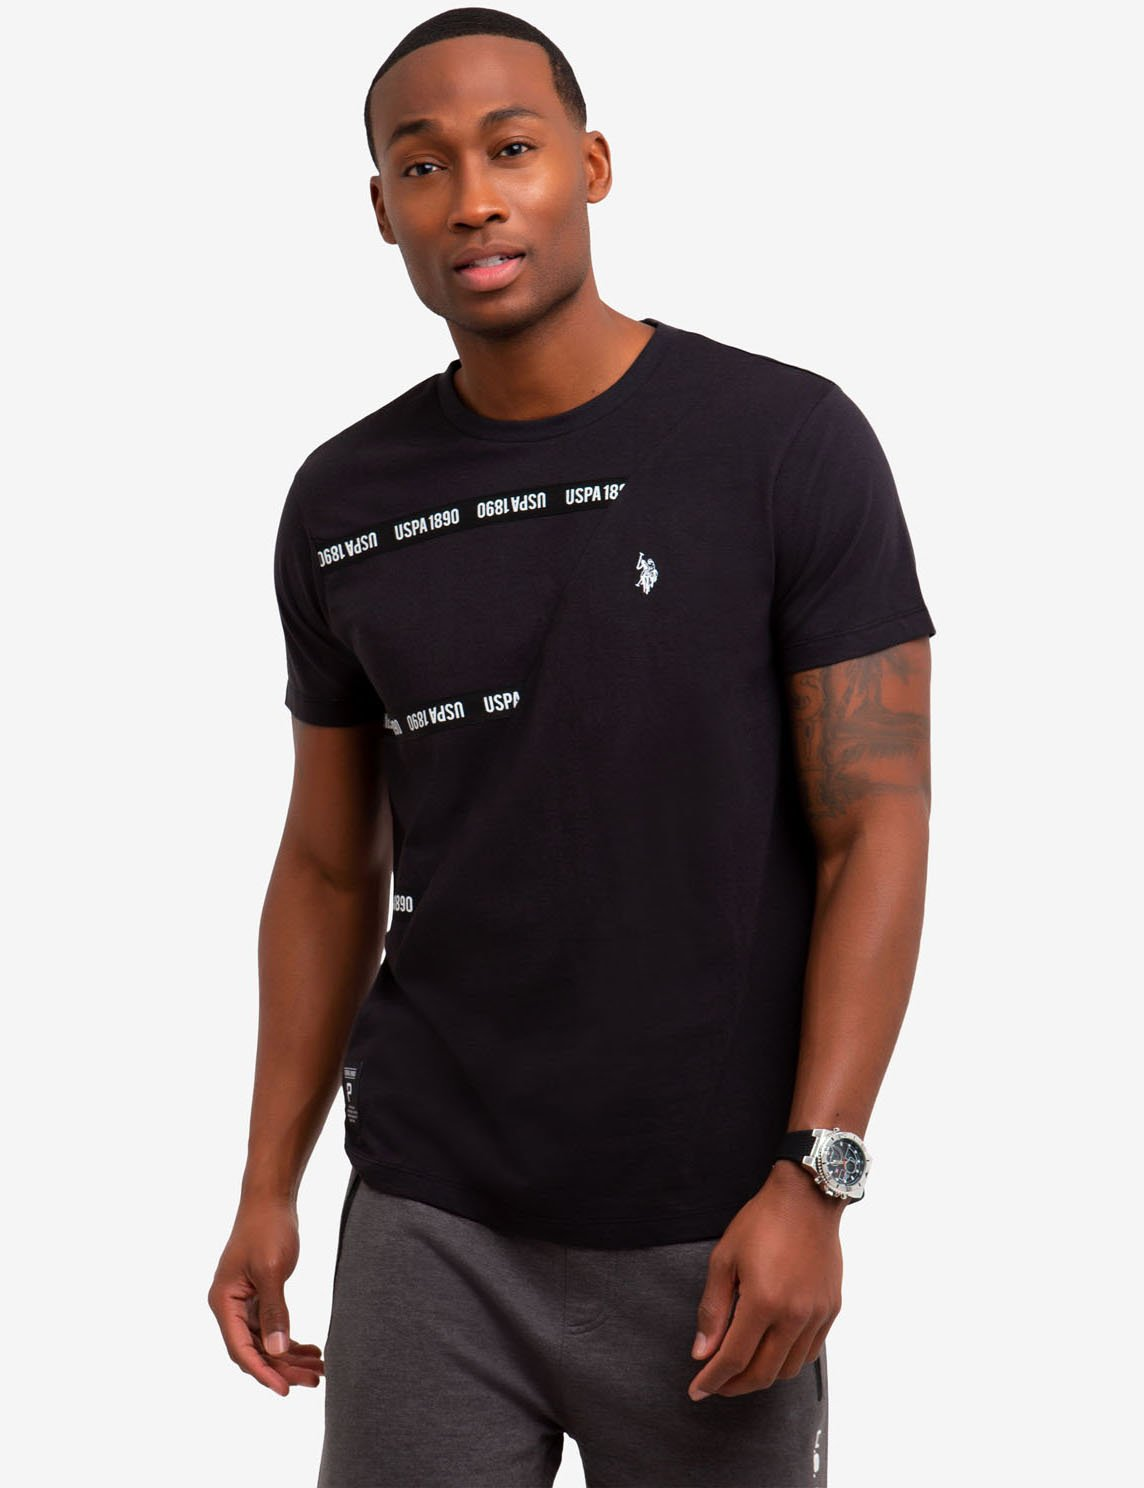 CREW NECK TAPE STRIPED TEE-SHIRT - U.S. Polo Assn.